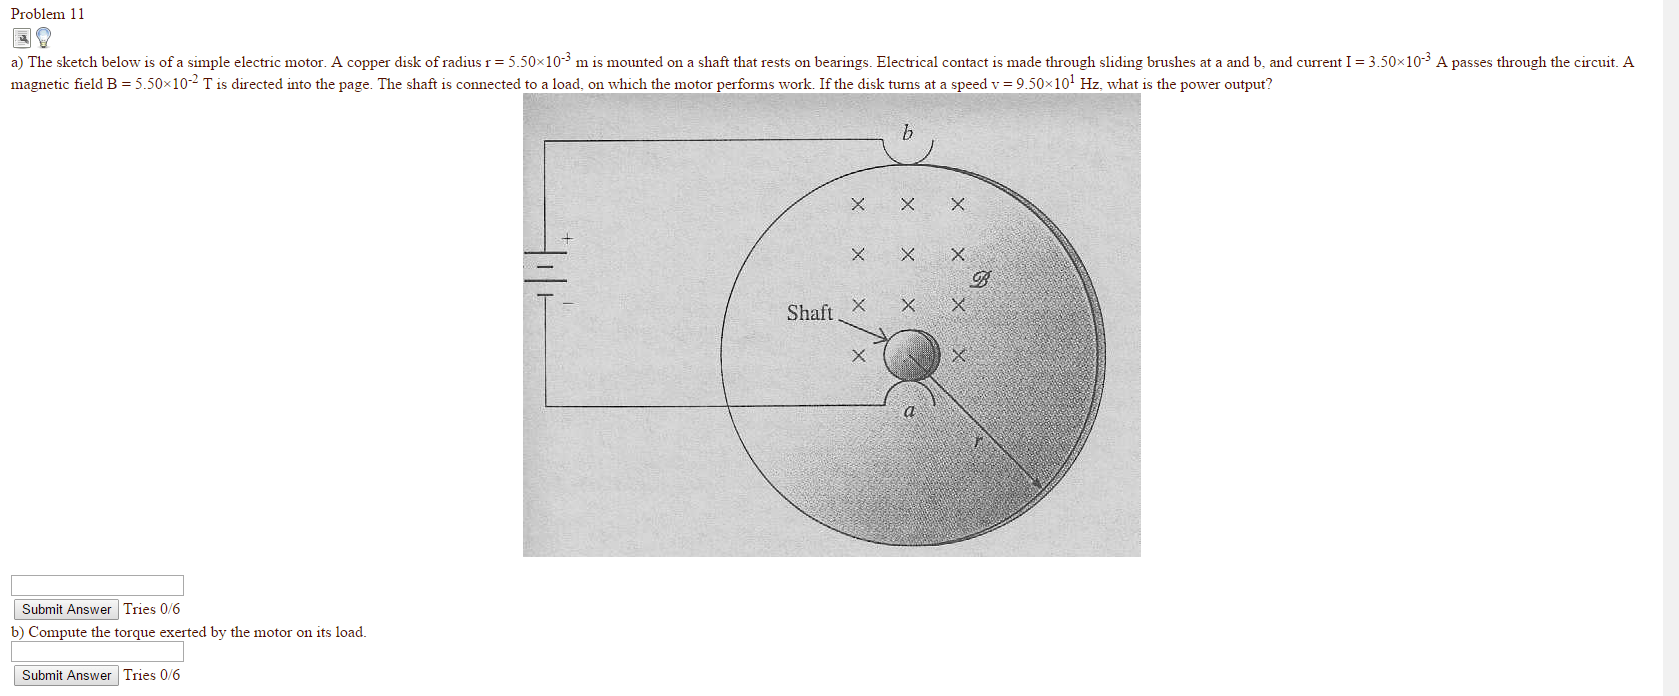 hight resolution of image for problem 11 a the sketch below is of a simple electric motor